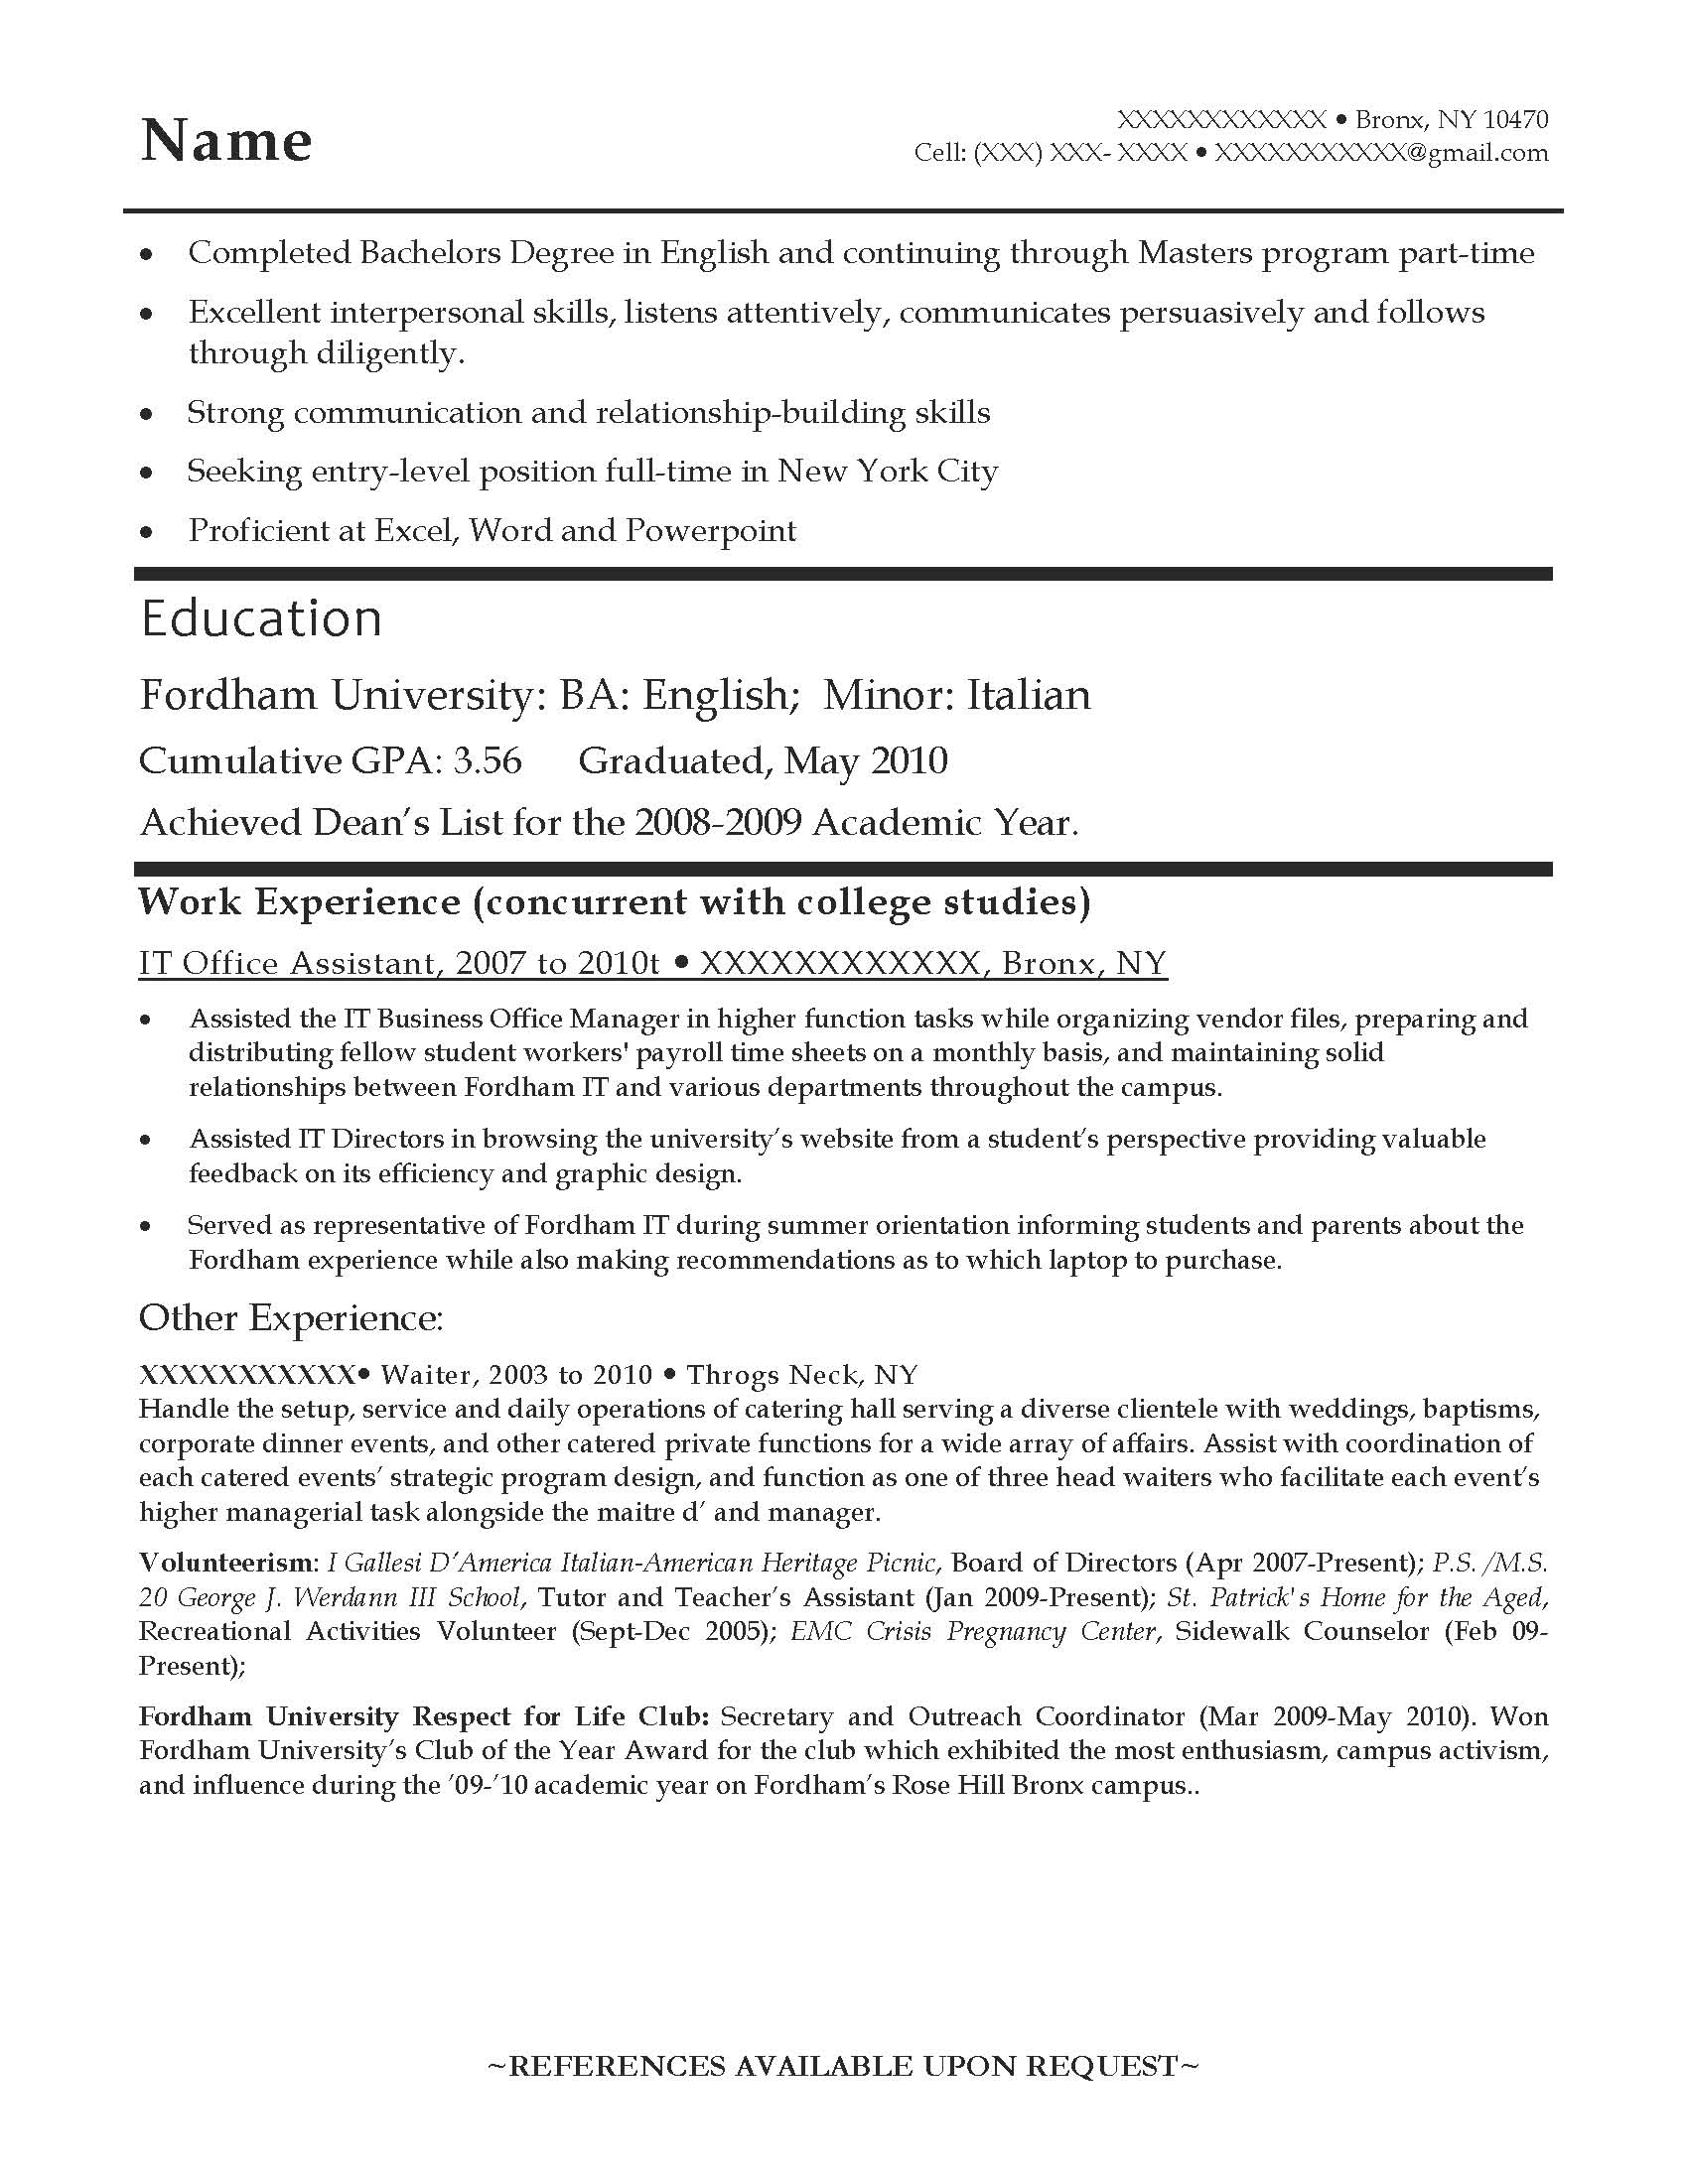 Samples Of Entry Level Resumes Entry Level Resume Samples Resume Prime